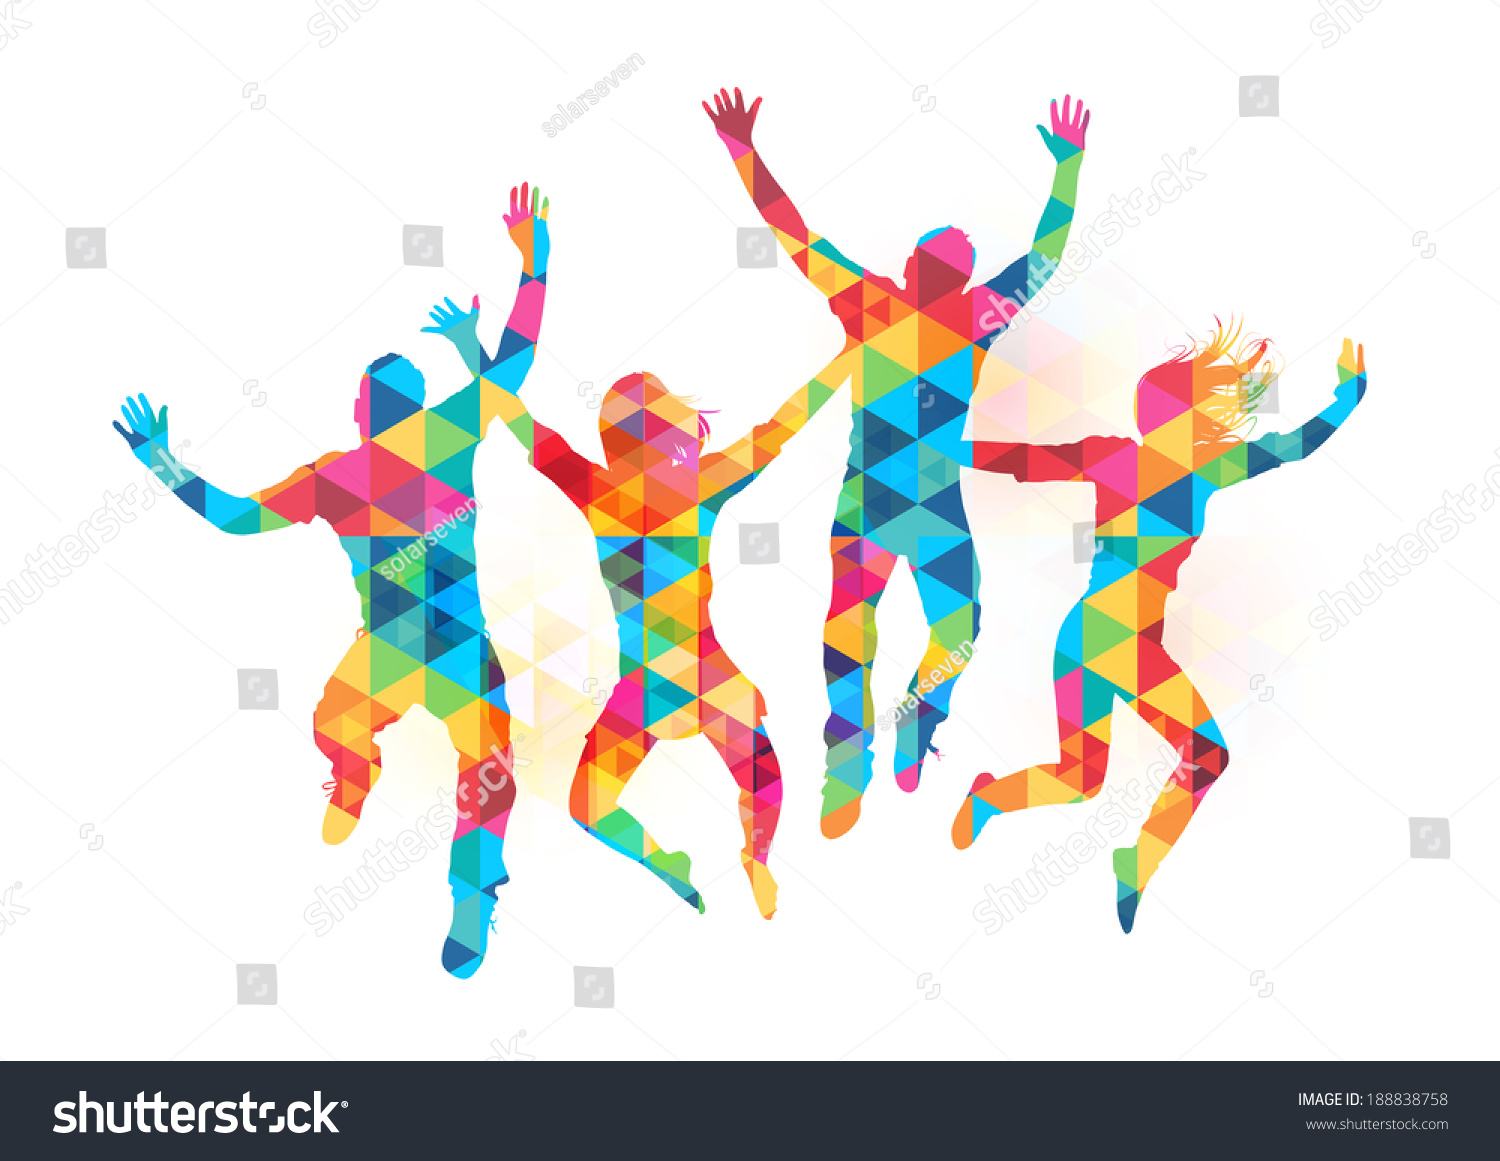 Celebration - Young People Jumping In Celebration With Abstract Pattern Vector Illustration